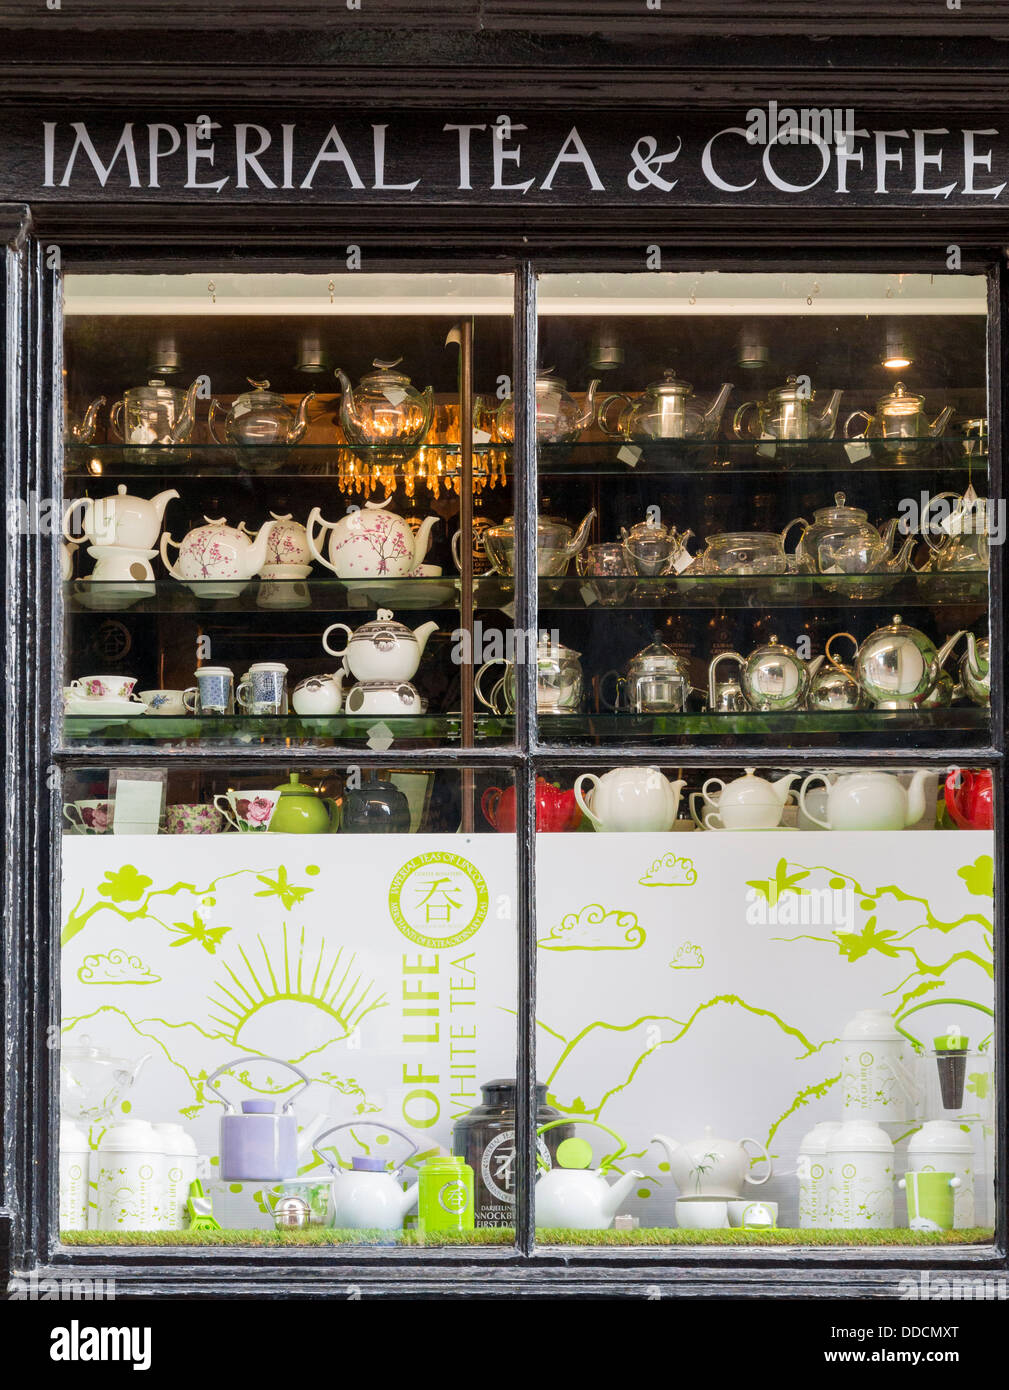 Imperia tea and coffee shop window with teapots in Lincoln, England - Stock Image